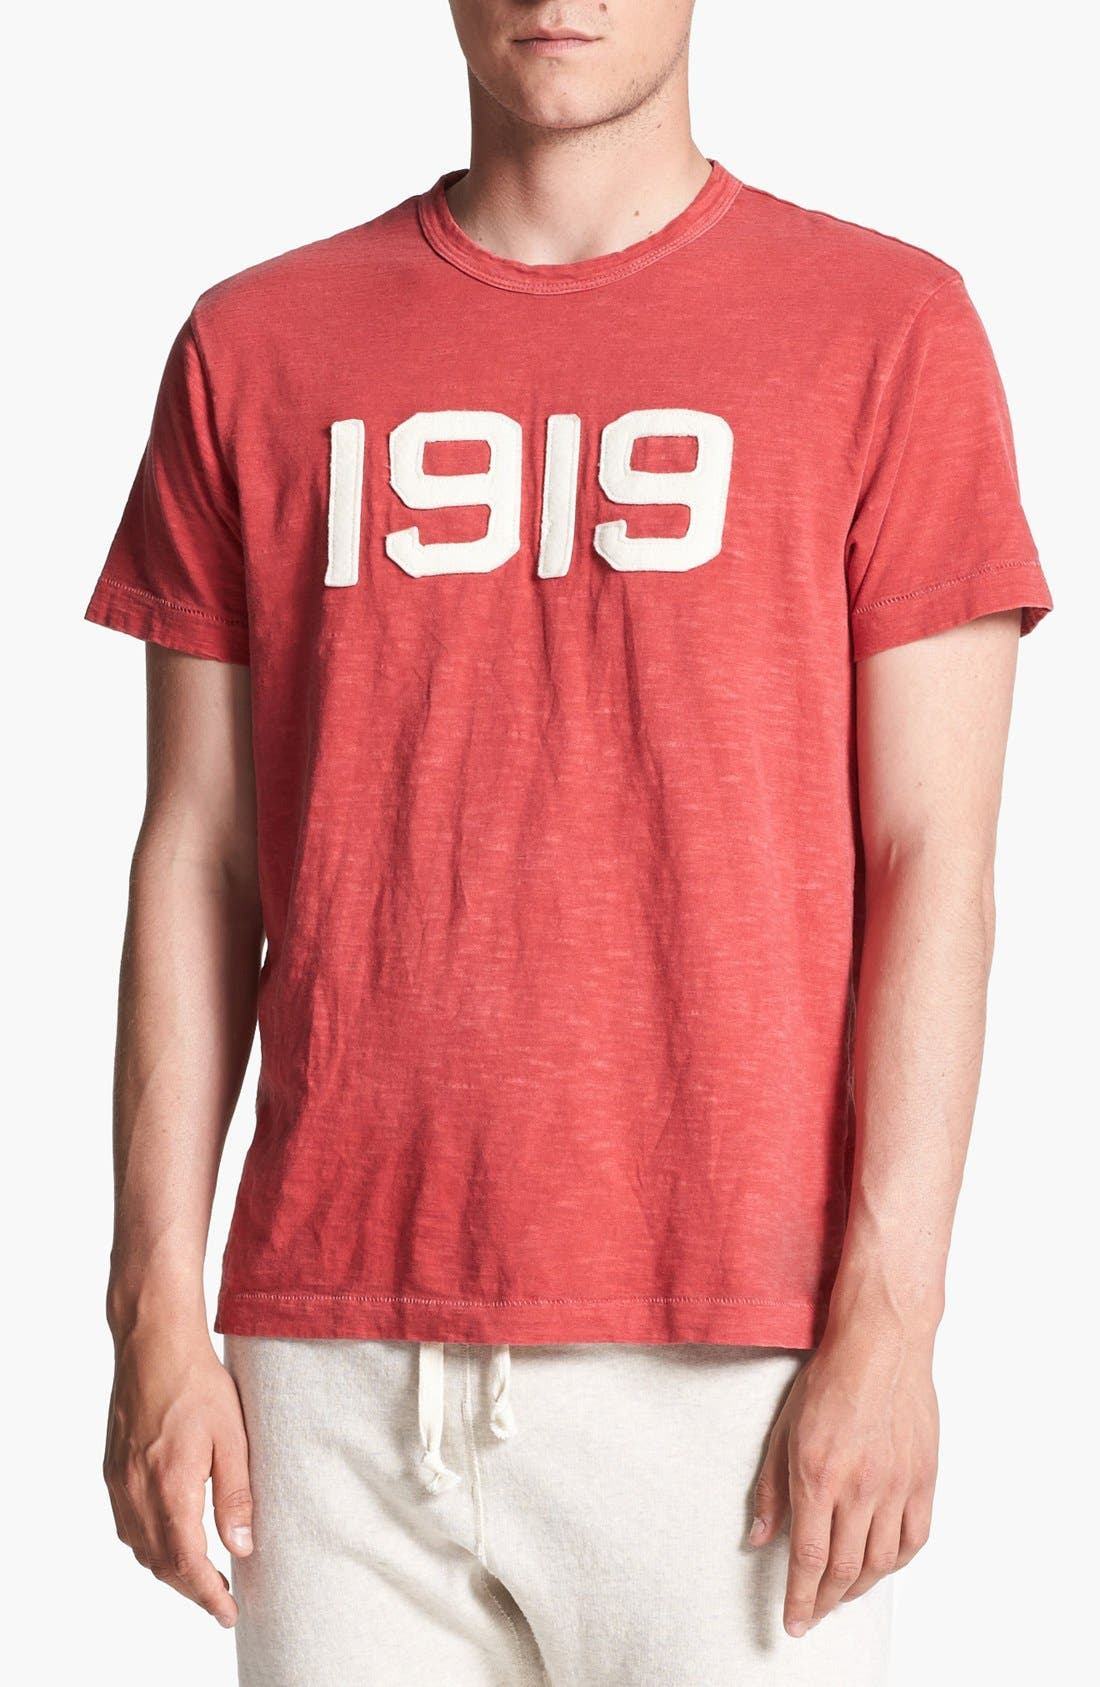 TODD SNYDER + CHAMPION '1919' T-Shirt, Main, color, 640